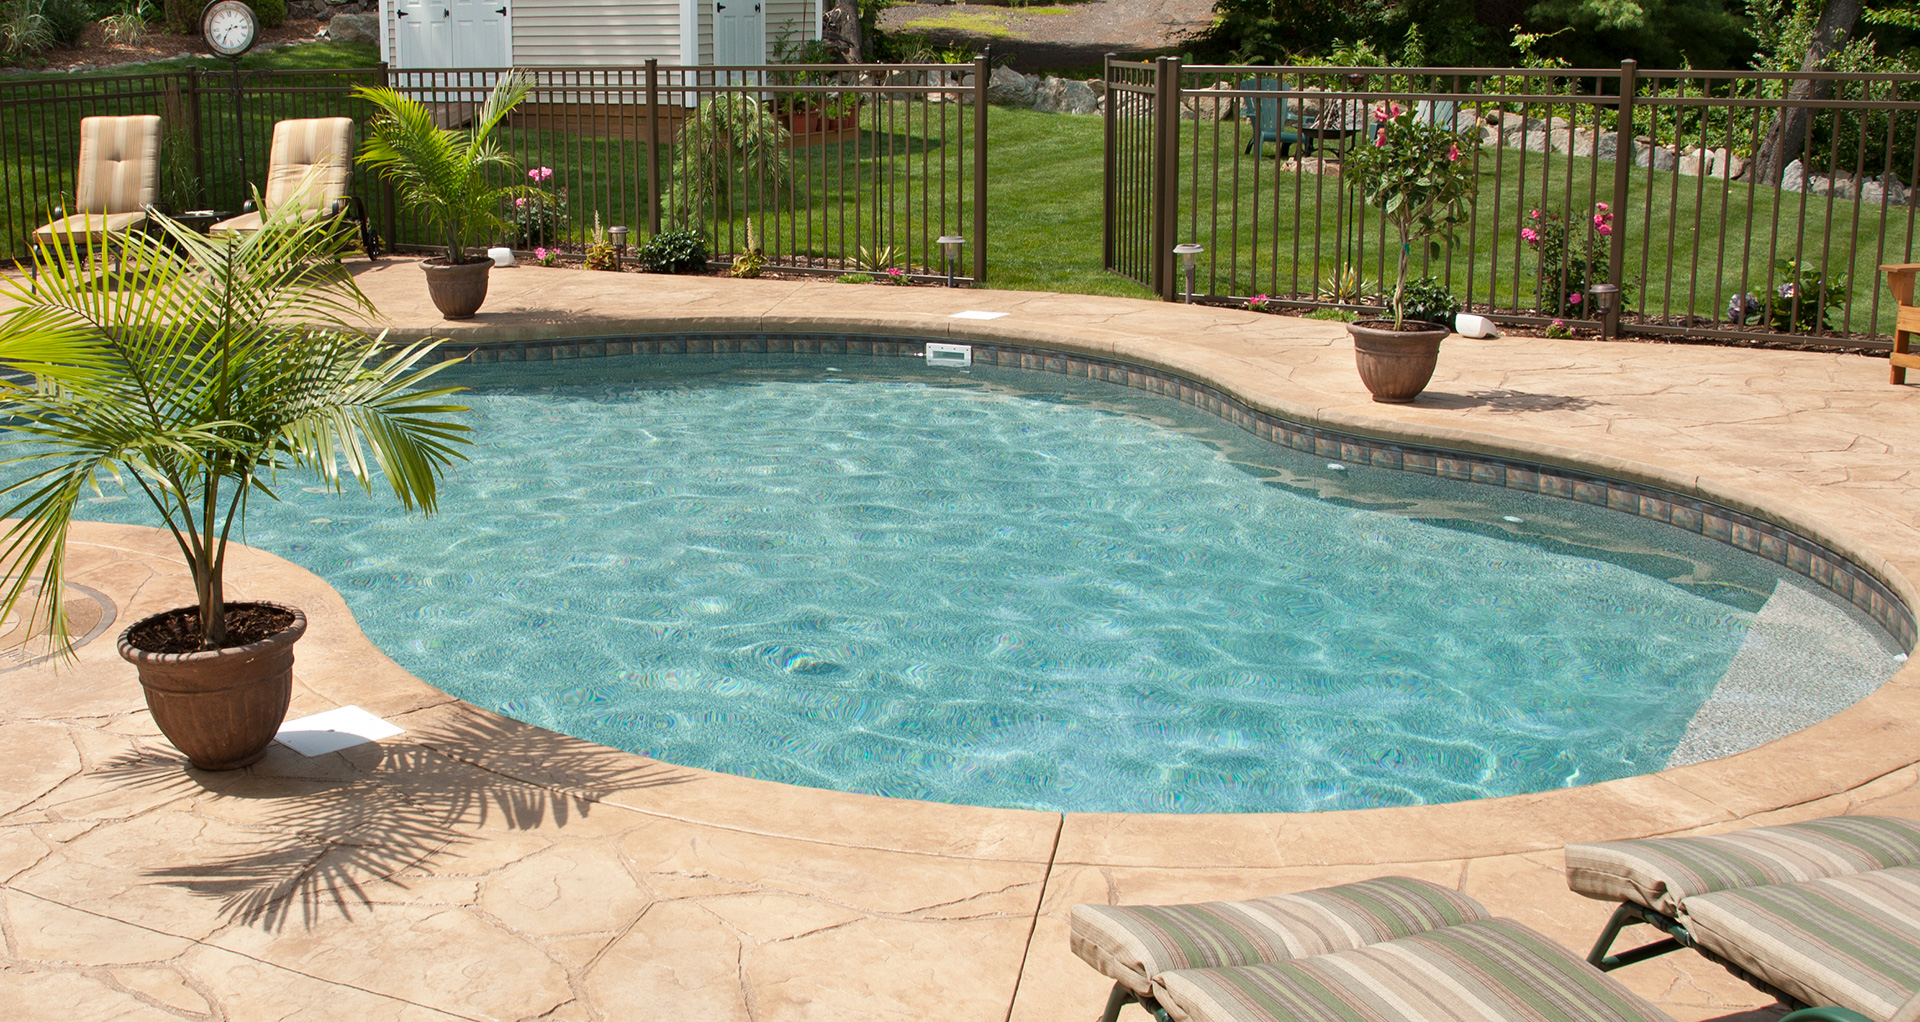 Pool with Liner